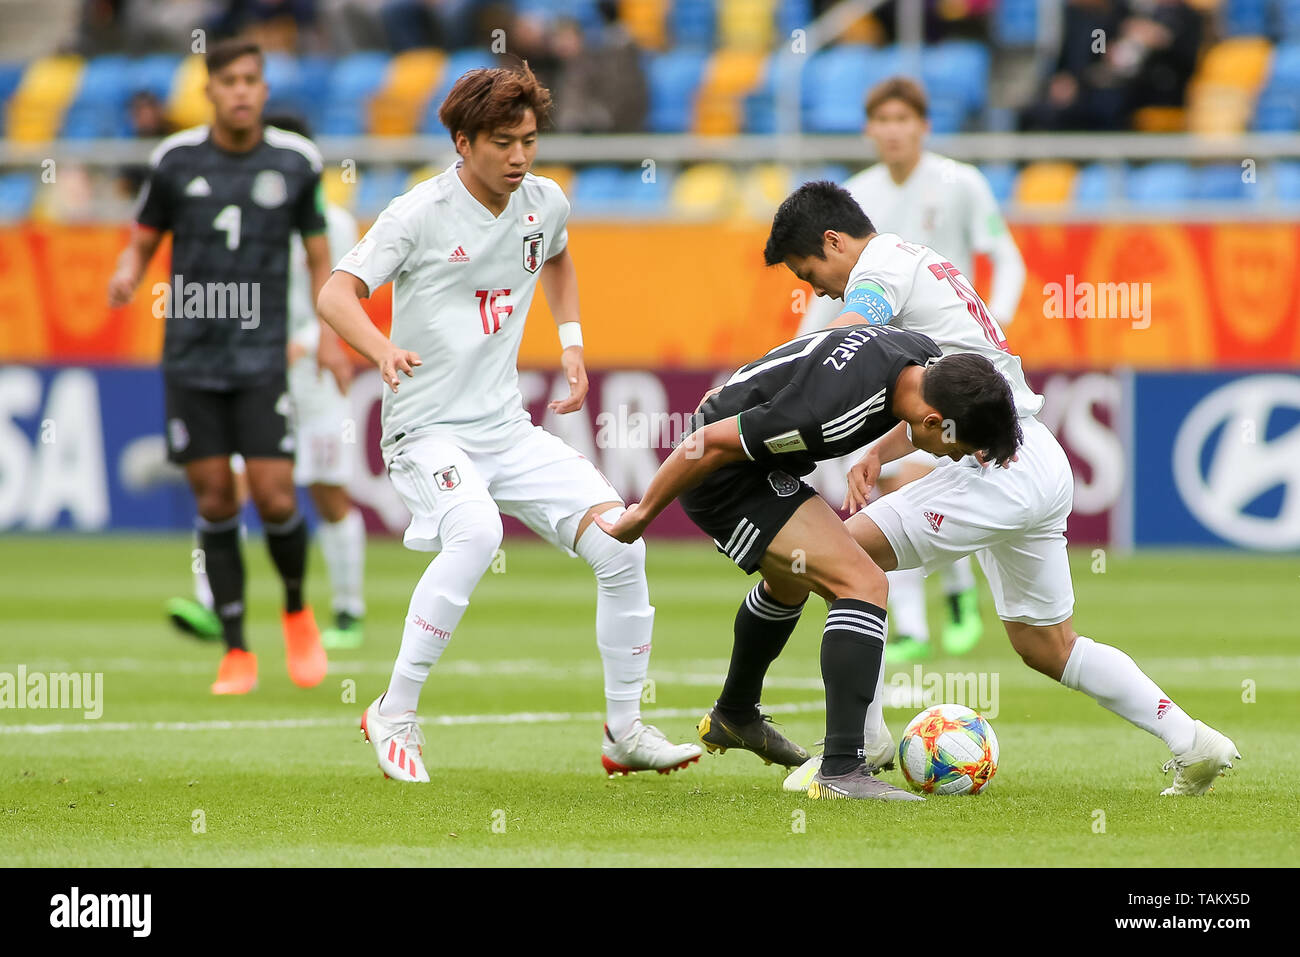 Gdynia Stadium, Gdynia, Poland - 26th May, 2019: Kota Yamada(L), Mitsuki Saito (R) from Japan and Diego Lainez(C) from Mexico seen in action during FIFA U-20 World Cup match between Mexico and Japan (GROUP B) in Gdynia. (Final score; Mexico 0:3 Japan) - Stock Image